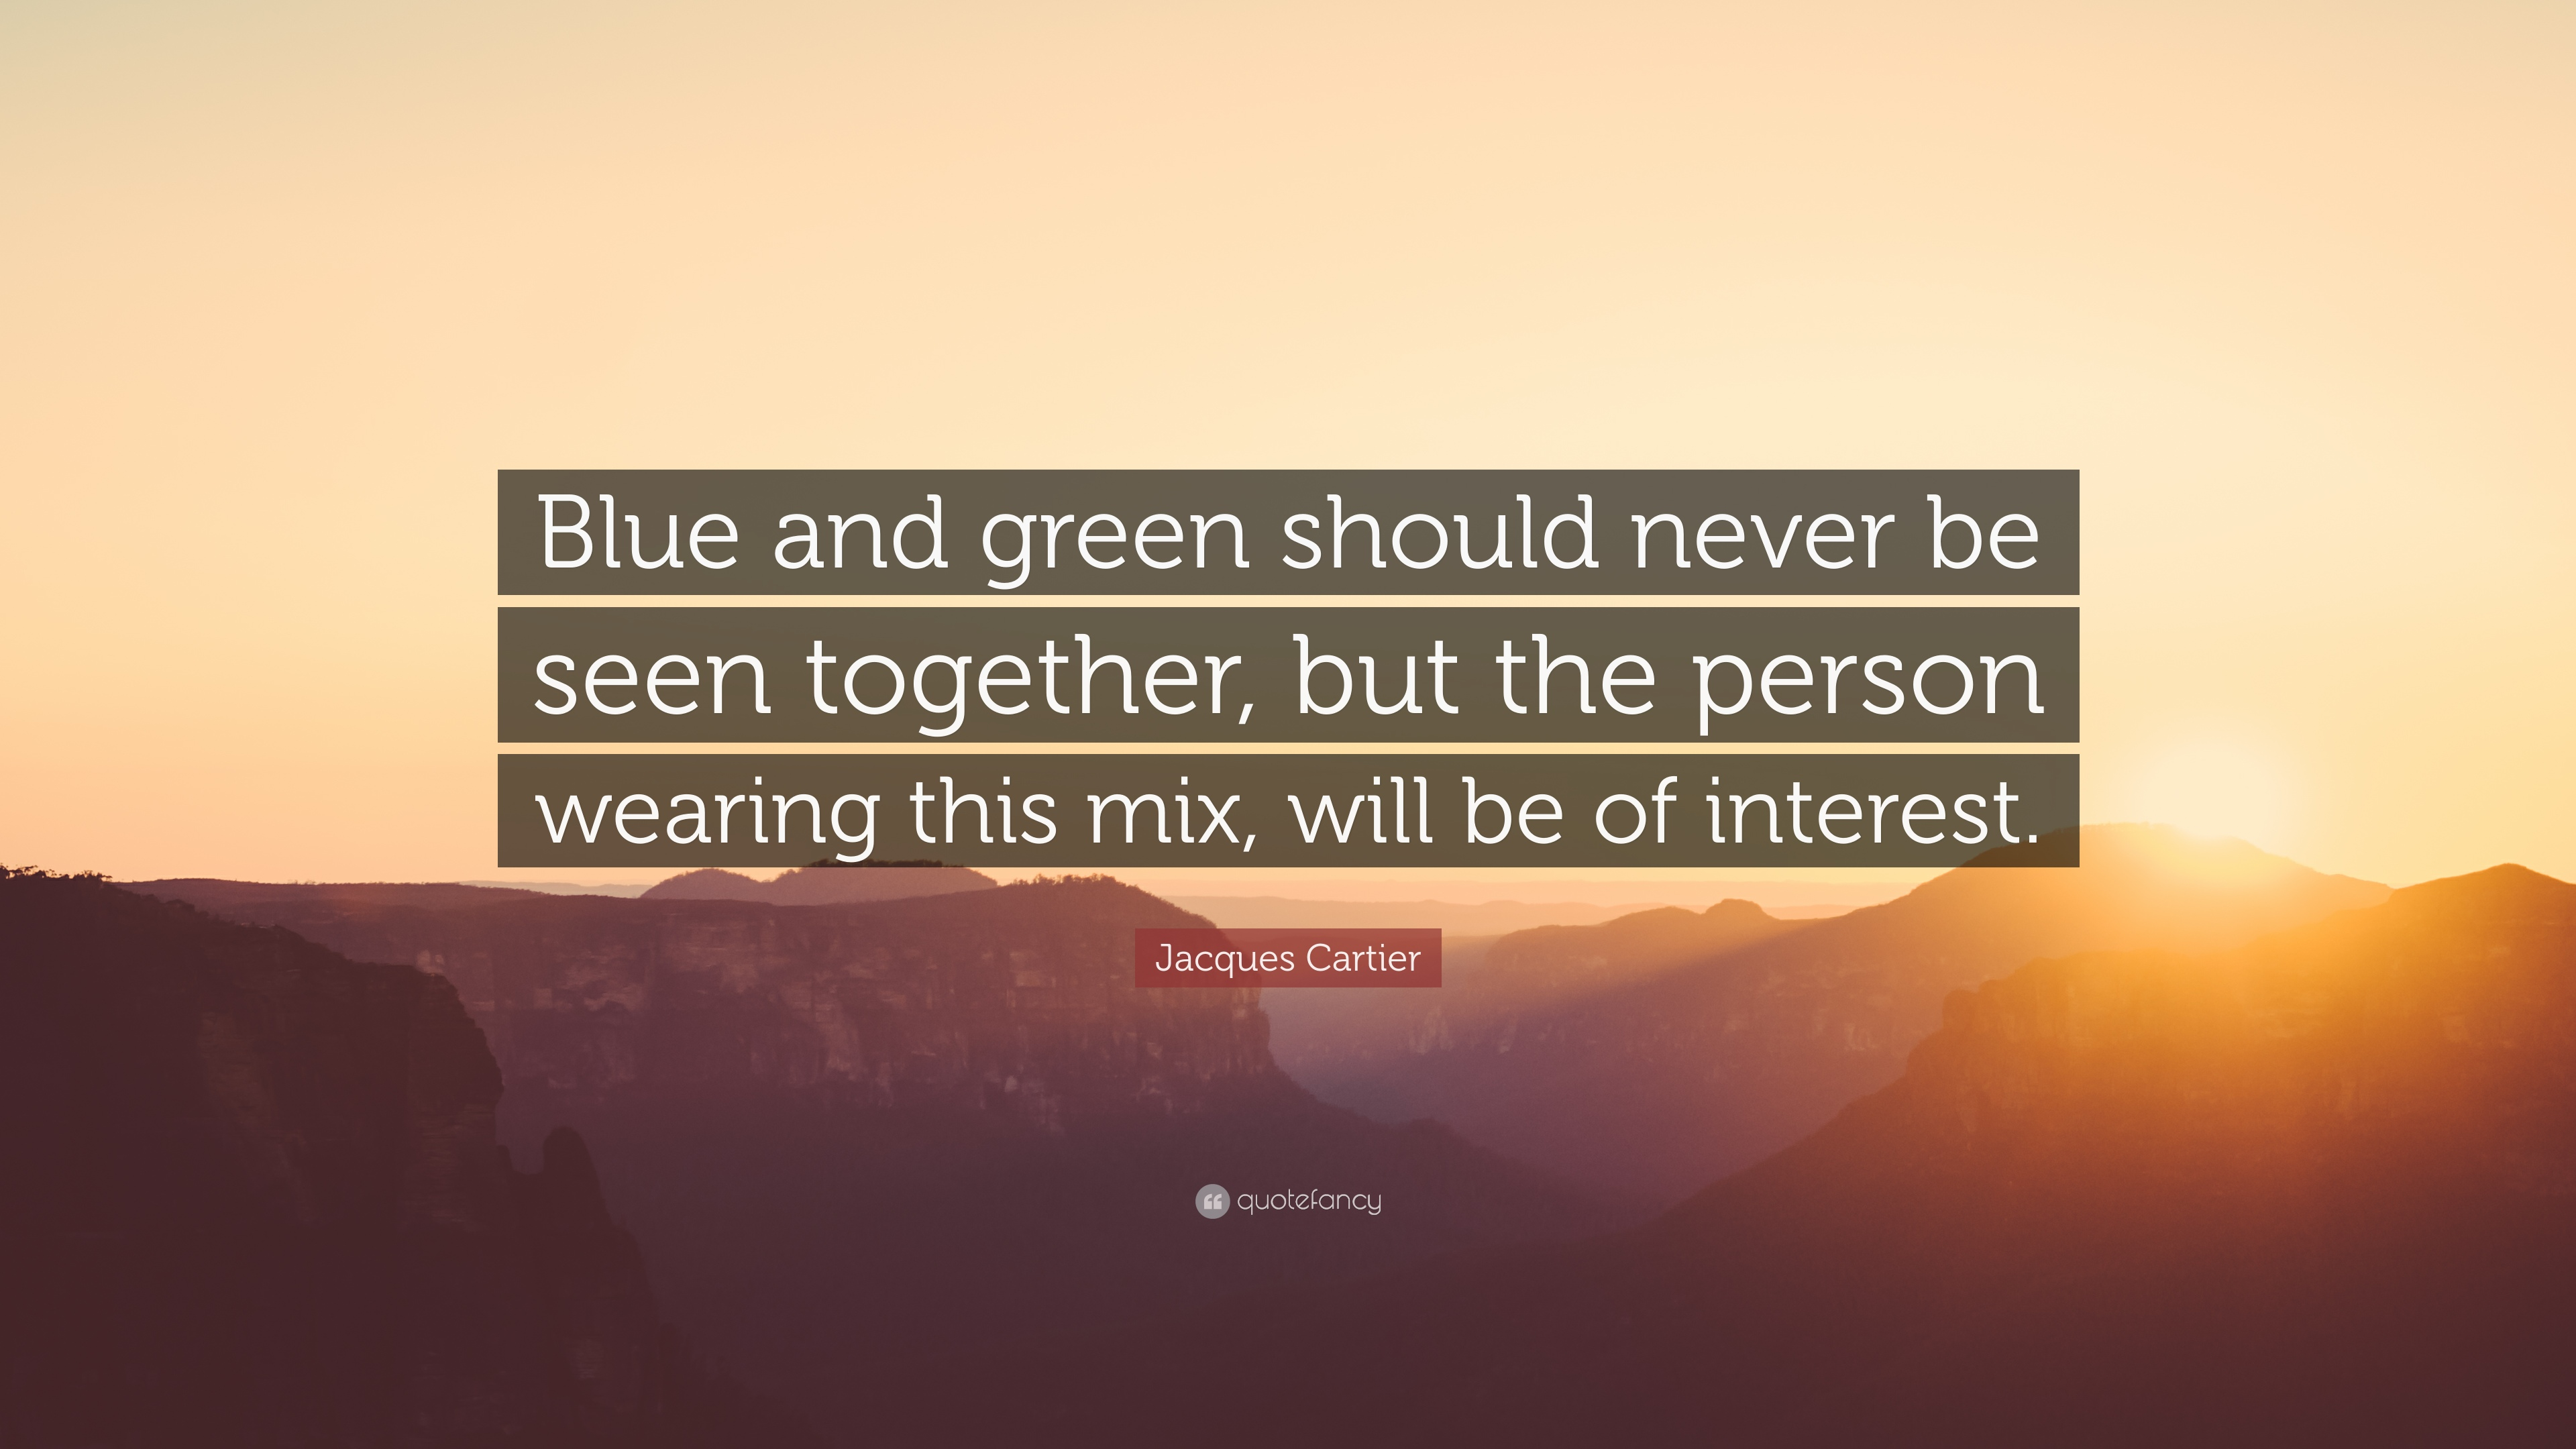 Jacques Cartier Quote     Blue and green should never be seen together     Jacques Cartier Quote     Blue and green should never be seen together  but  the